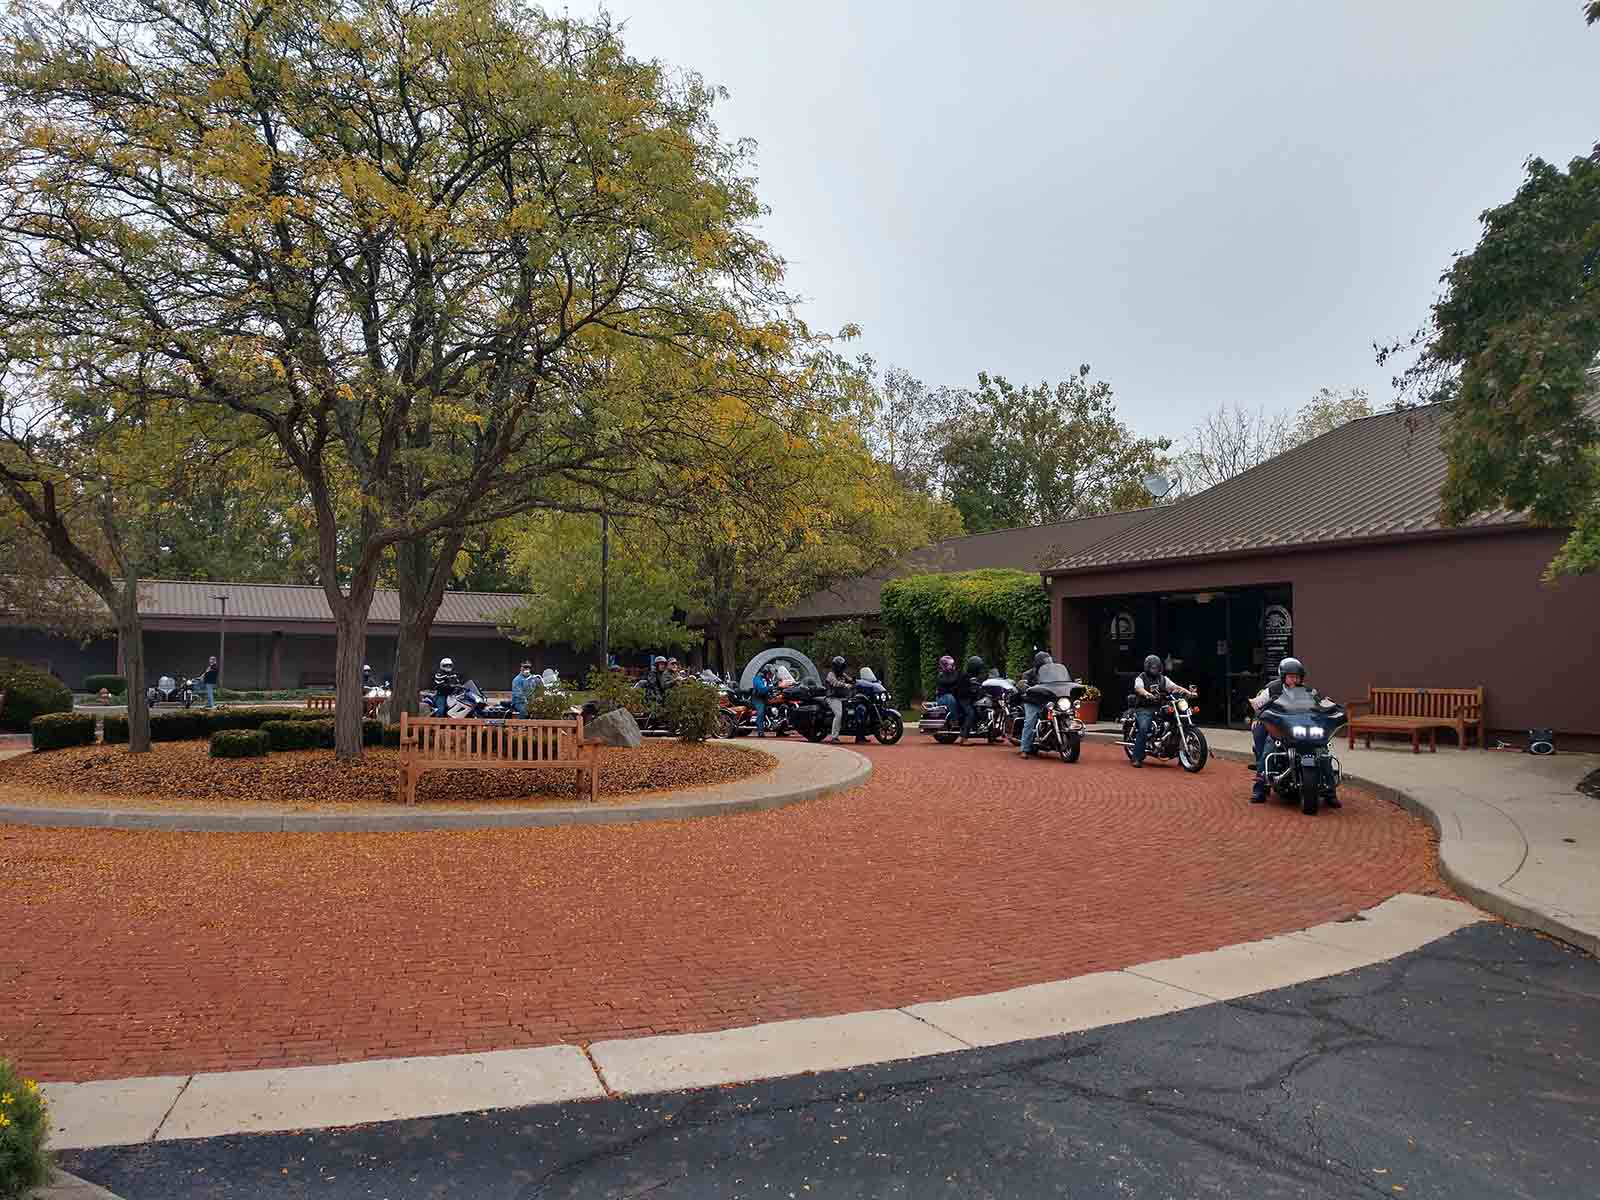 2021 Ride for Scouting started at the AMA Motorcycle Hall of Fame